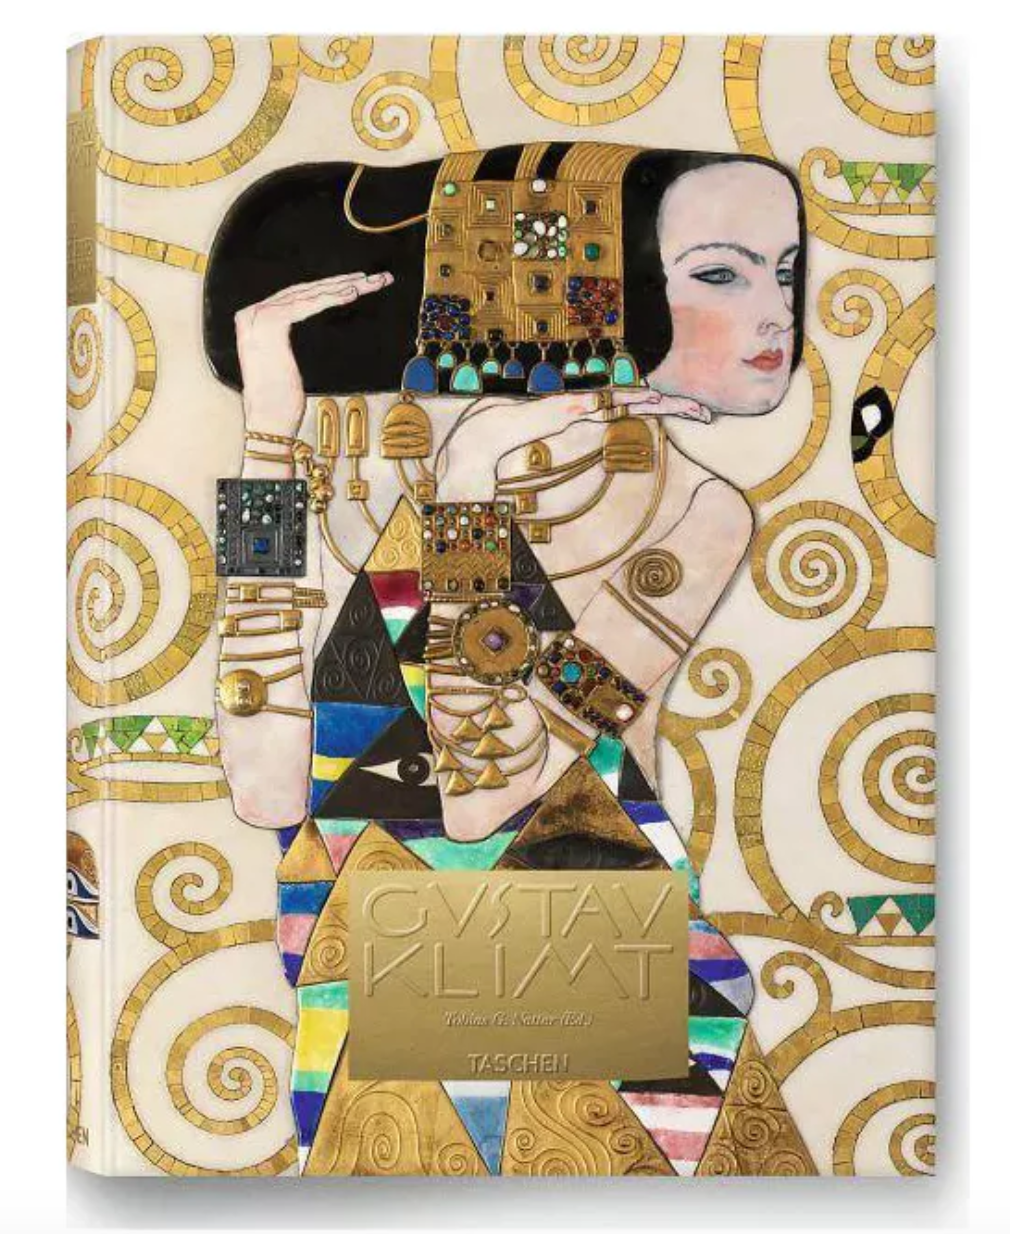 GUSTAV KLIMT COMPLETE PAINTINGS